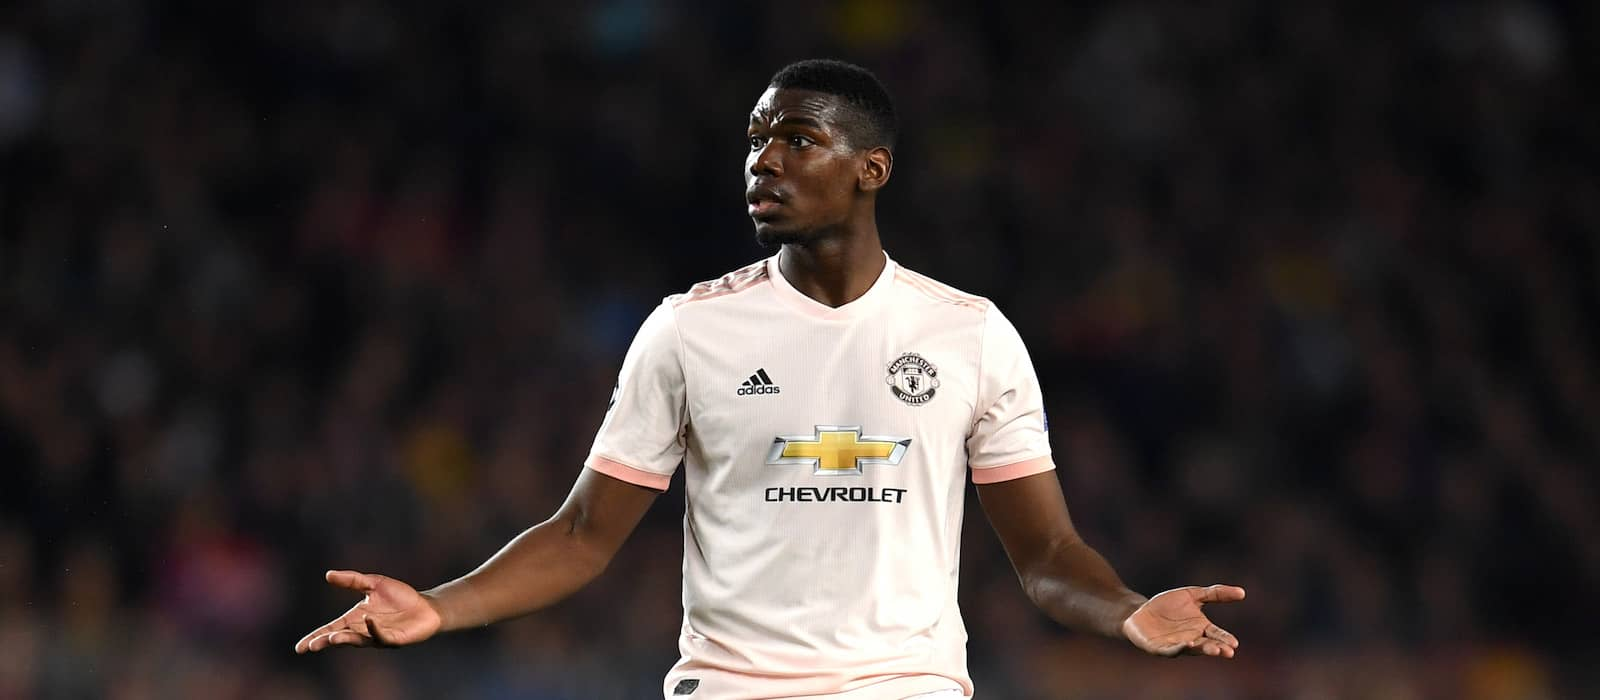 Manchester United slap incredible asking price on Paul Pogba: report